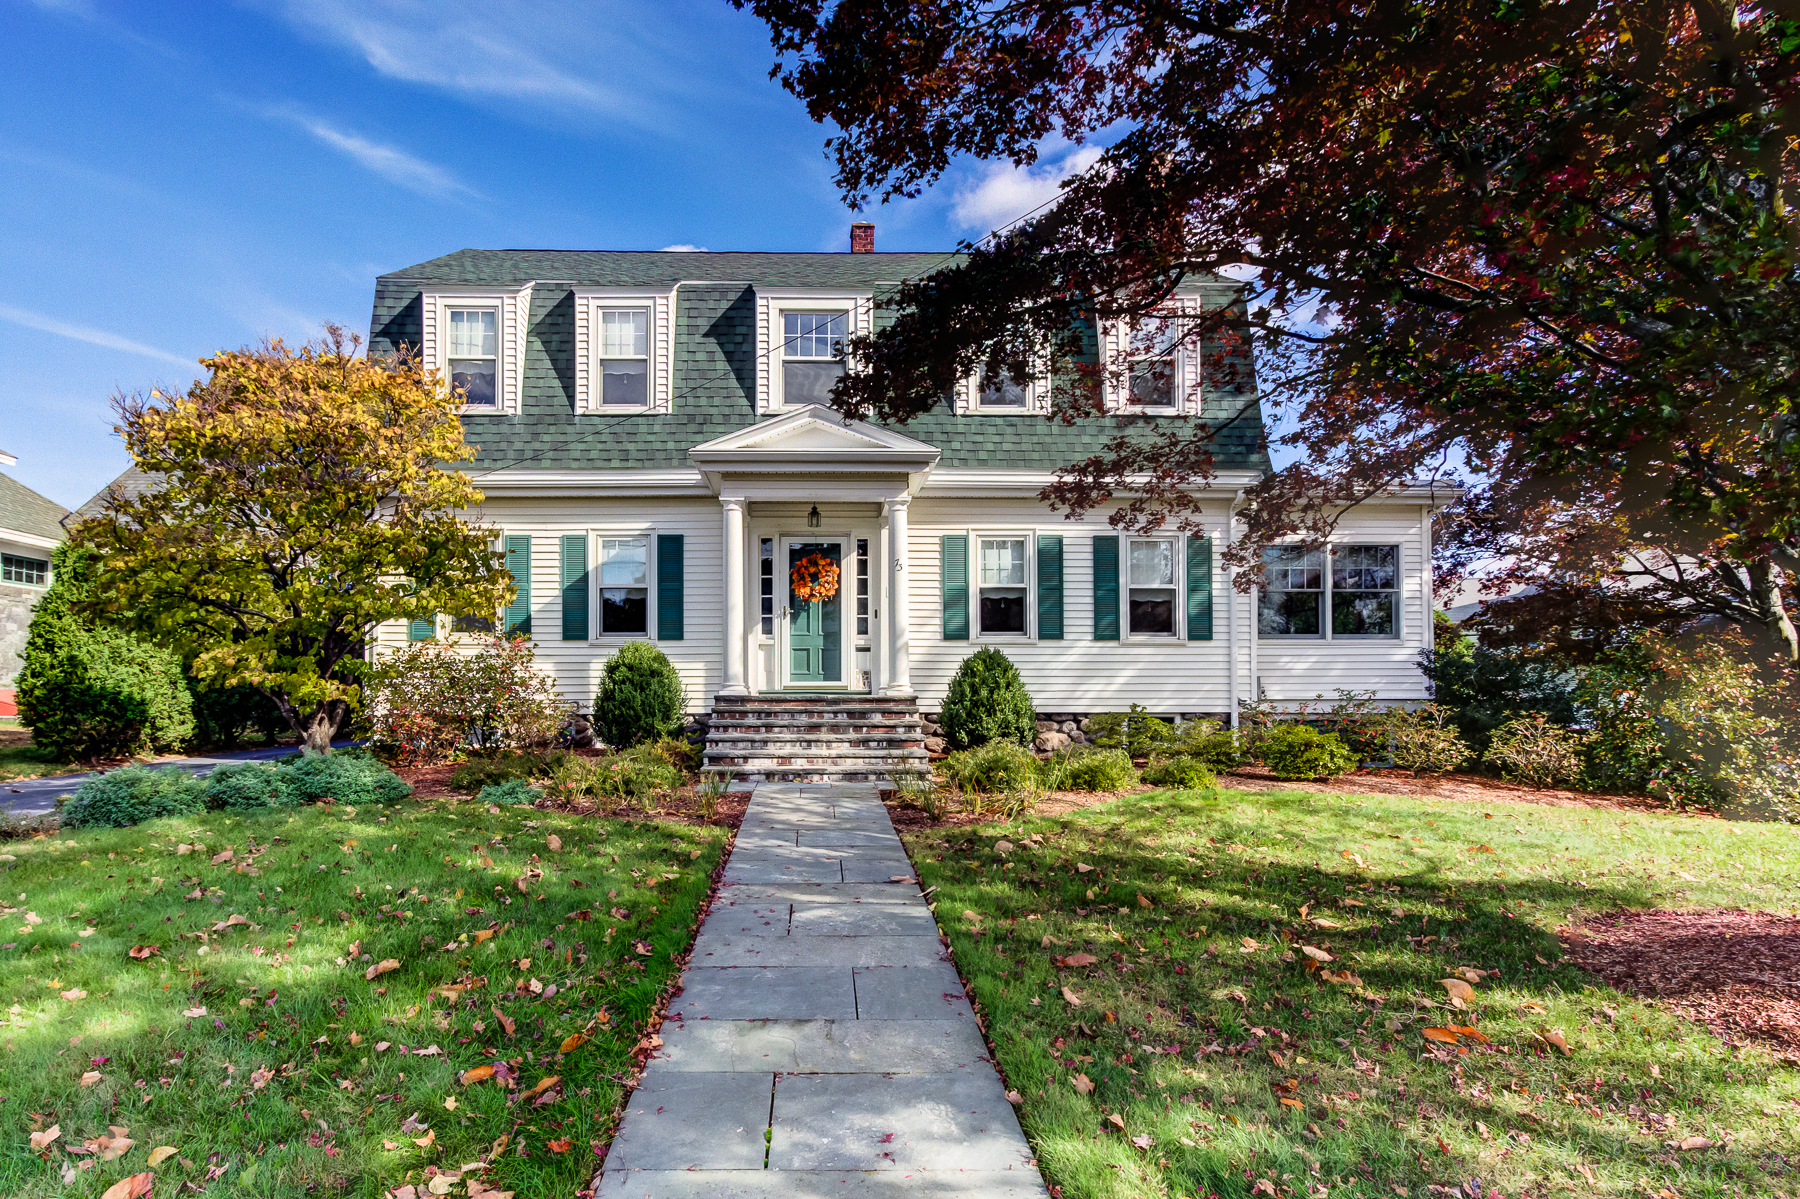 Single Family Home for Sale at Charming Gambrel Home 73 Congress Street Milford, 01757 United States